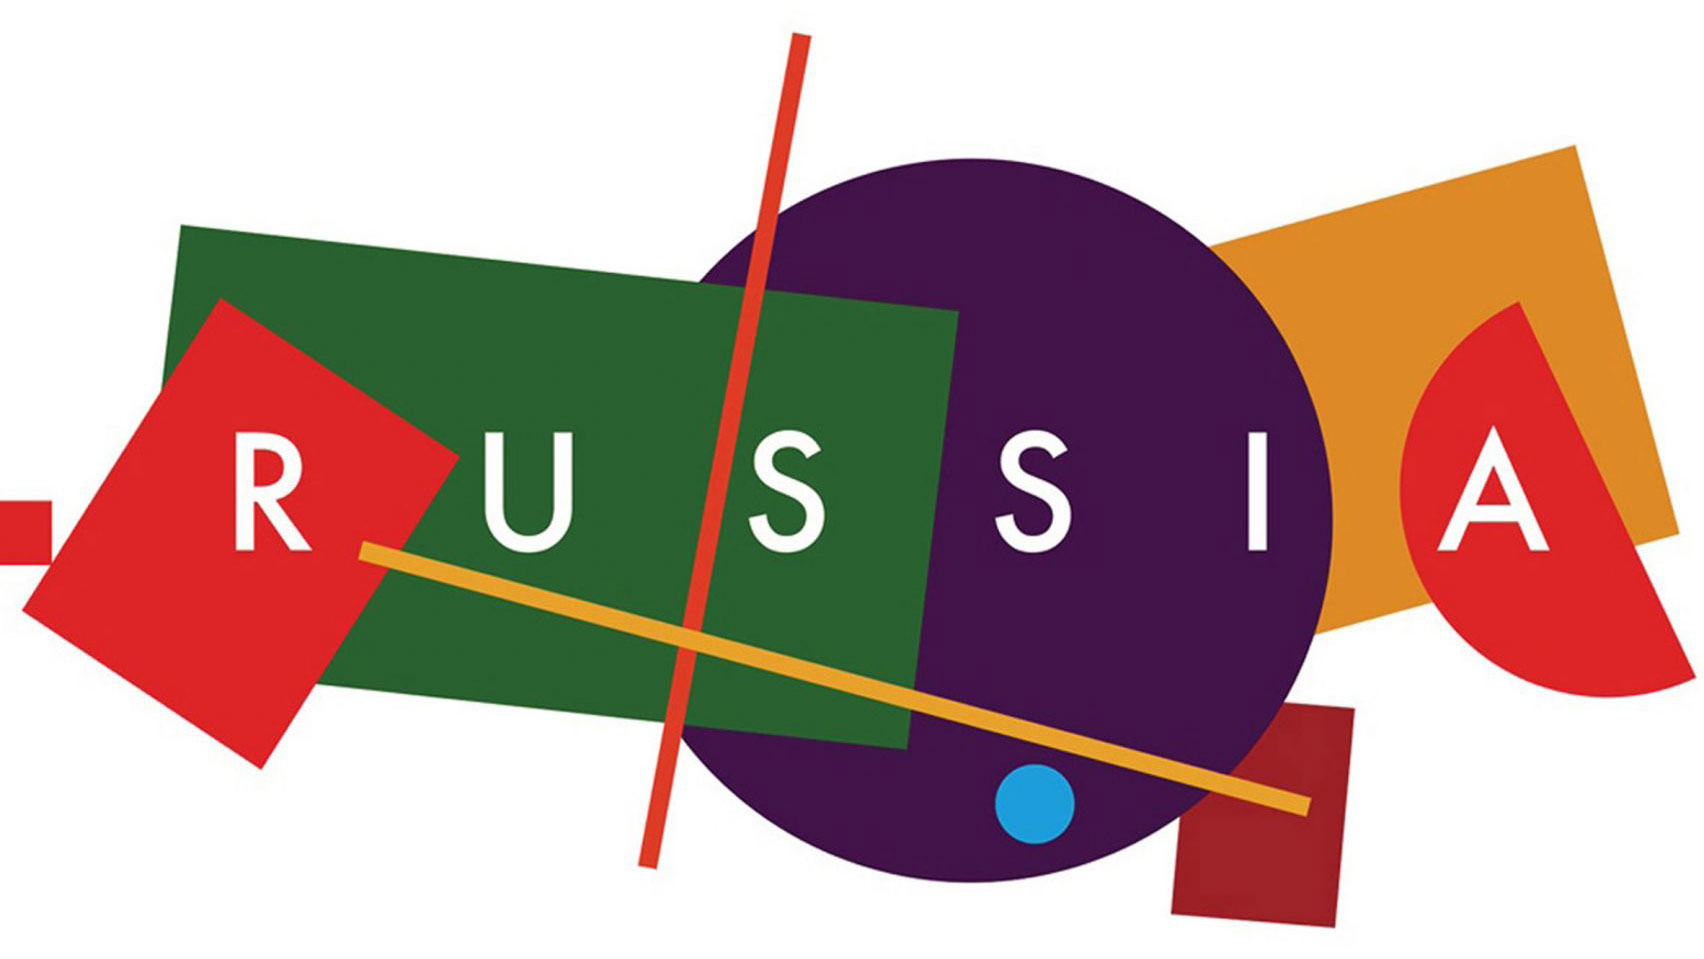 Russia's new tourist identity inspired by avant-garde art